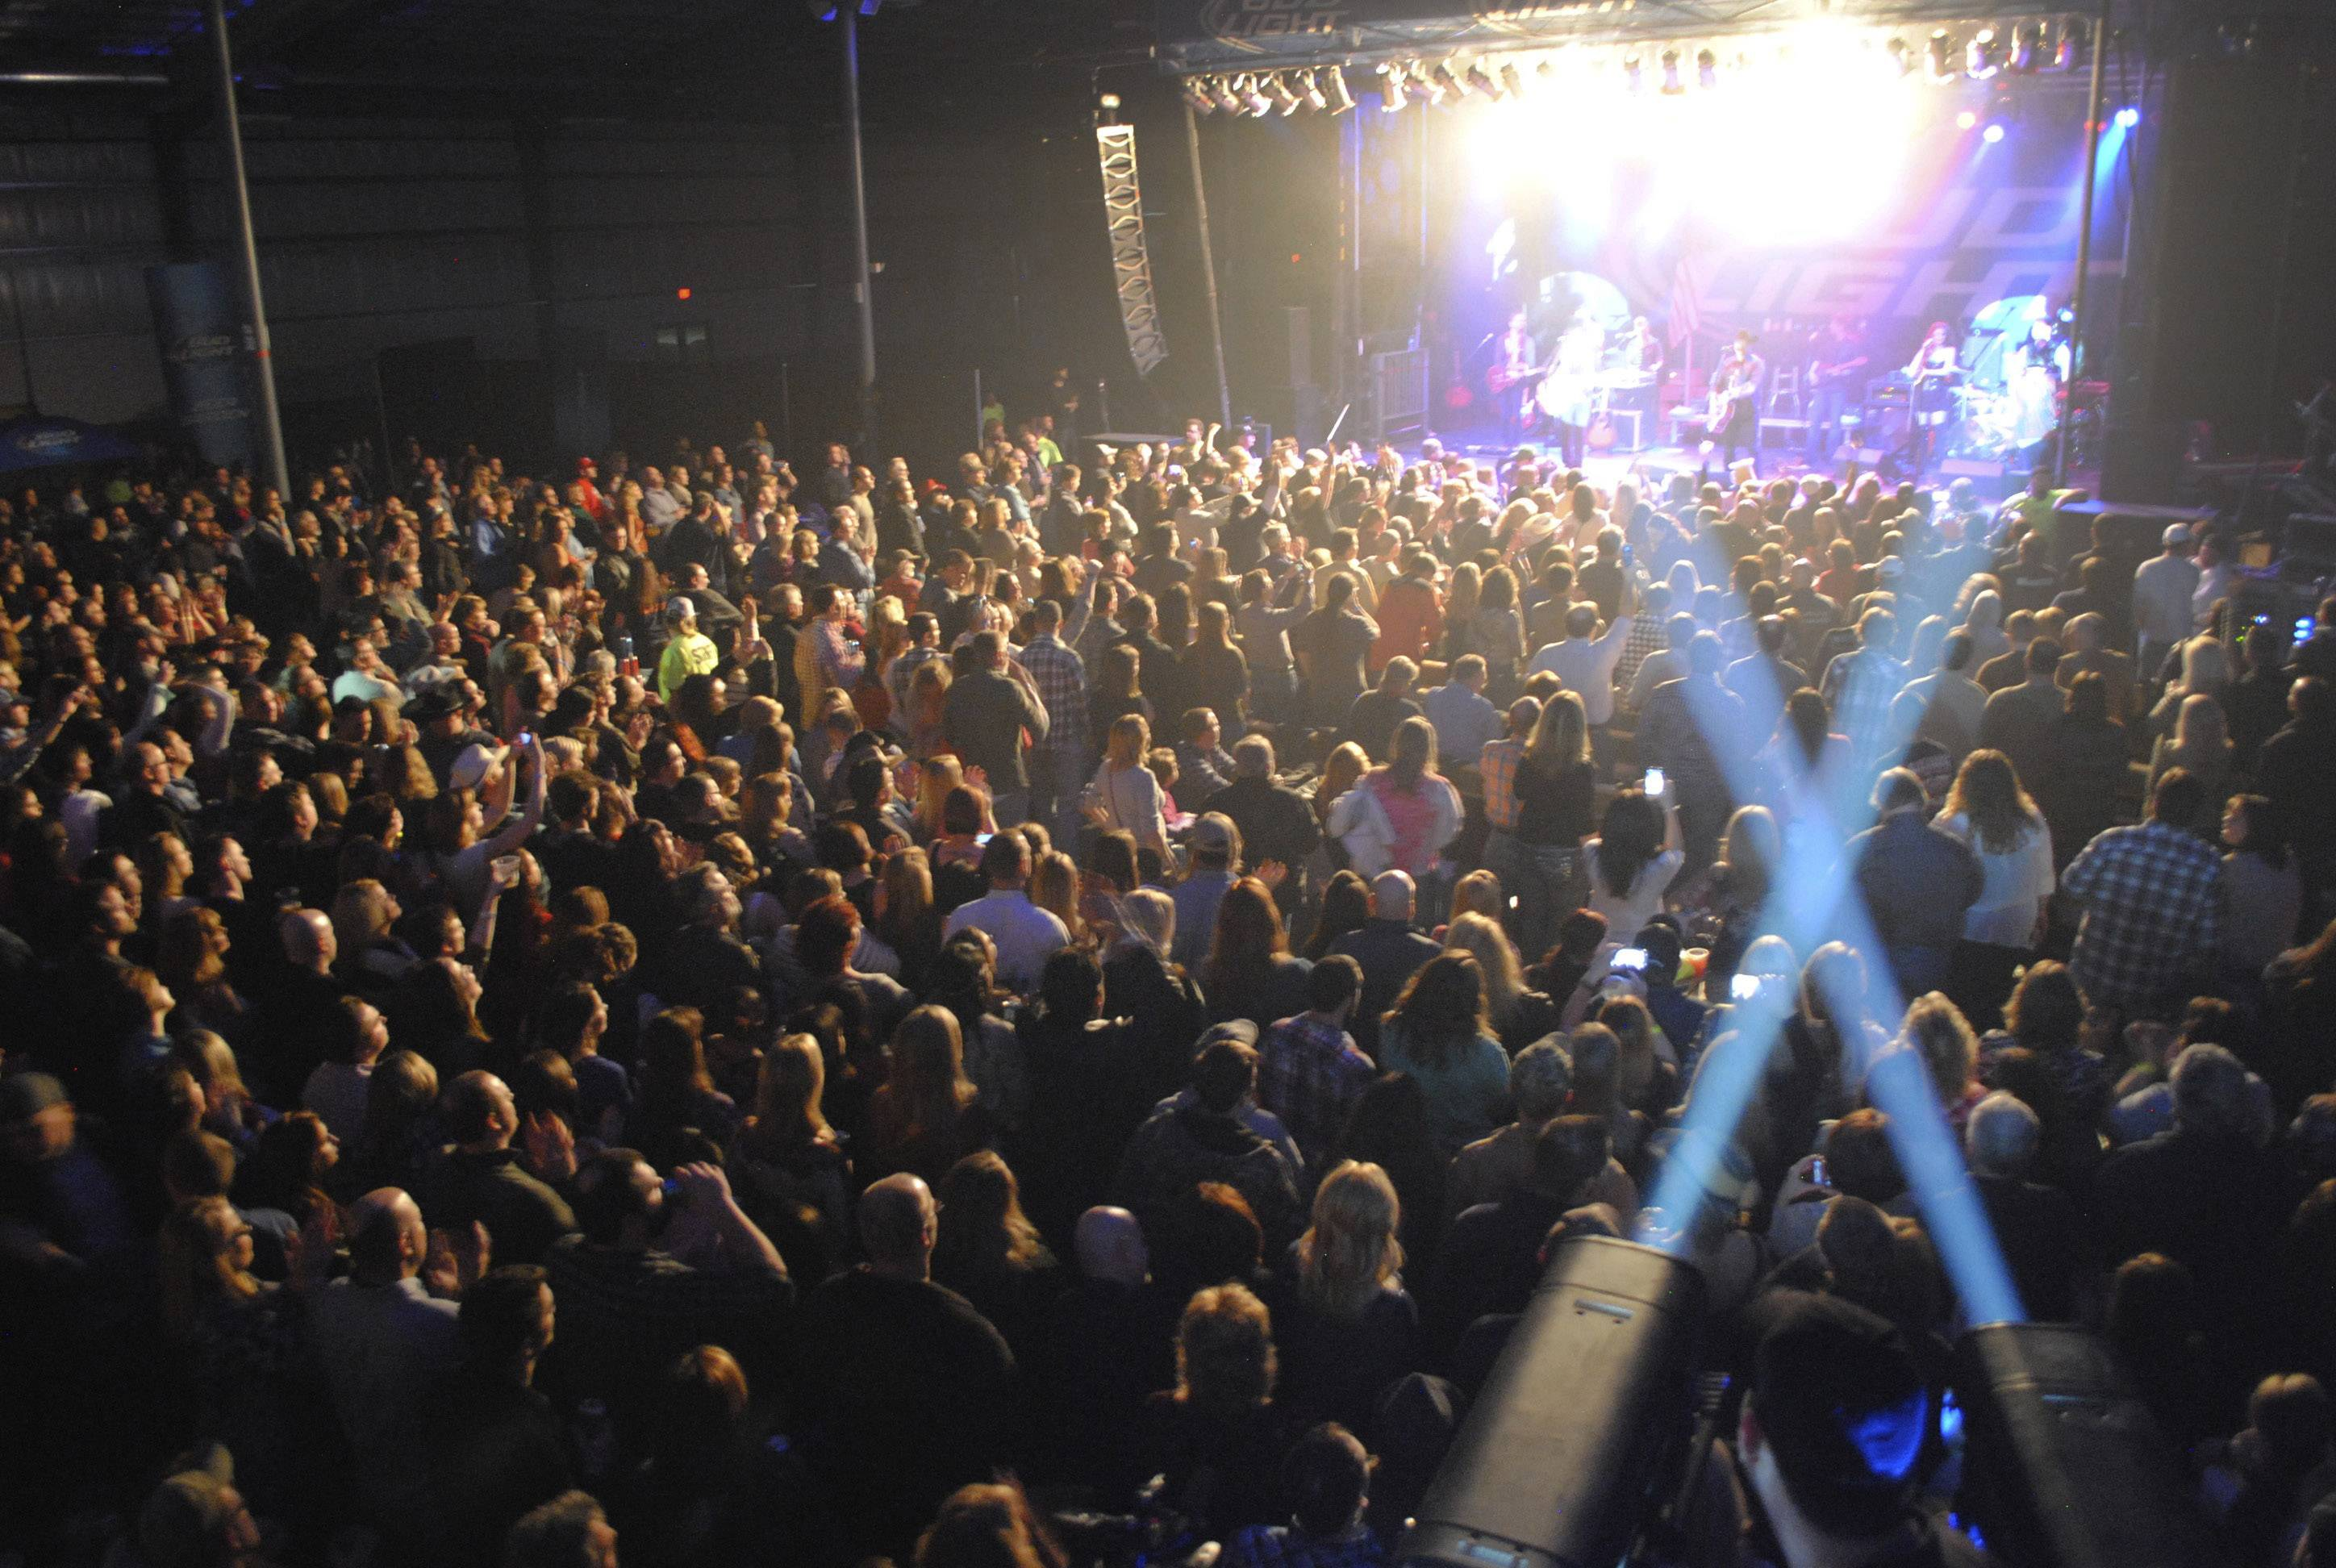 Big & Rich fans enjoy the show this past Saturday at Austin's Fuel Arena at the Lake County Fairgrounds in Grayslake.